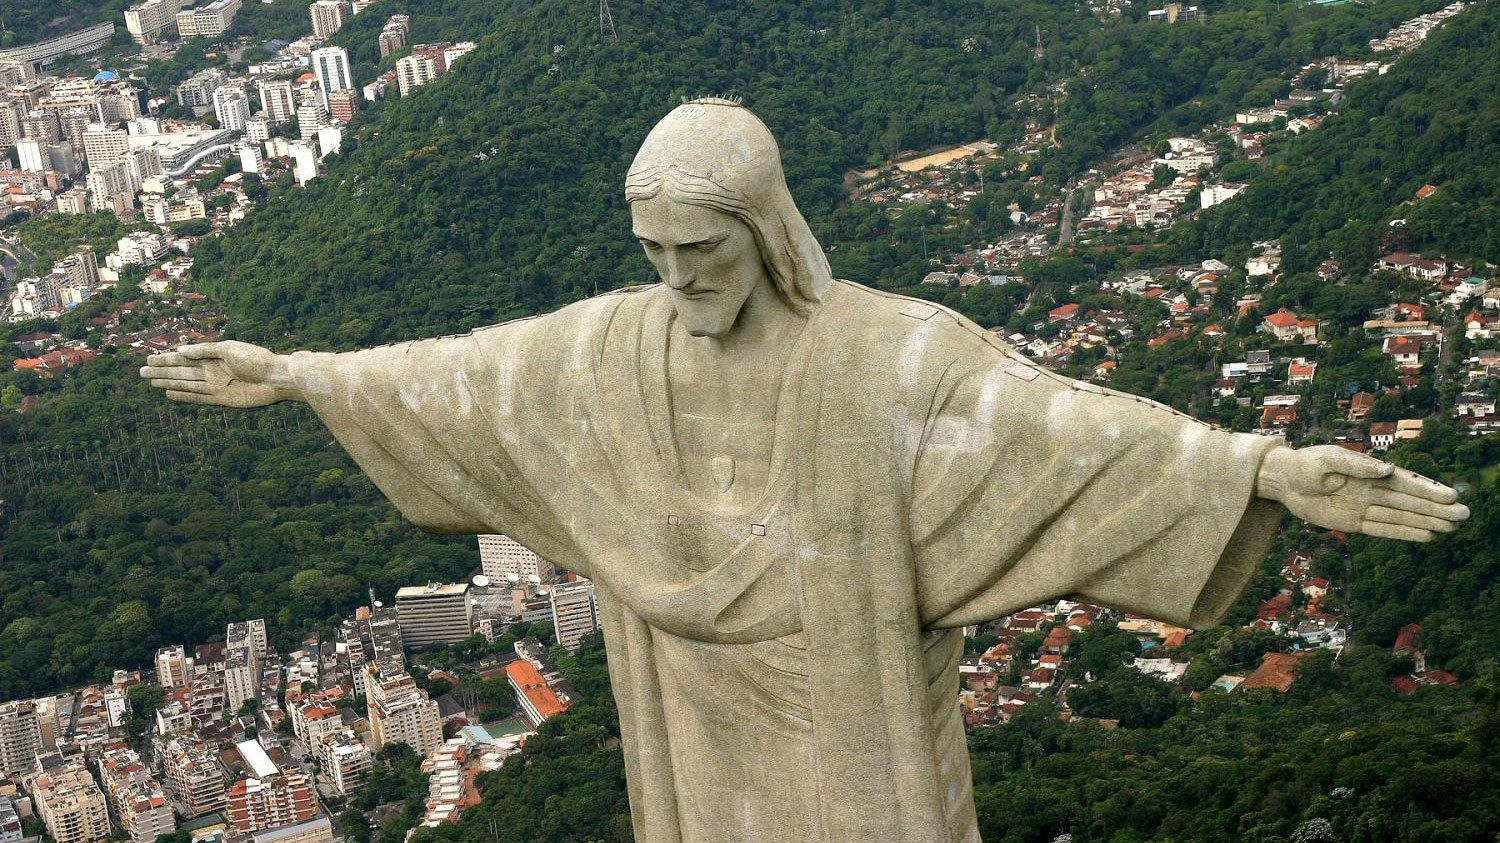 Christ the Redeemer statue from above in Rio de Janeiro